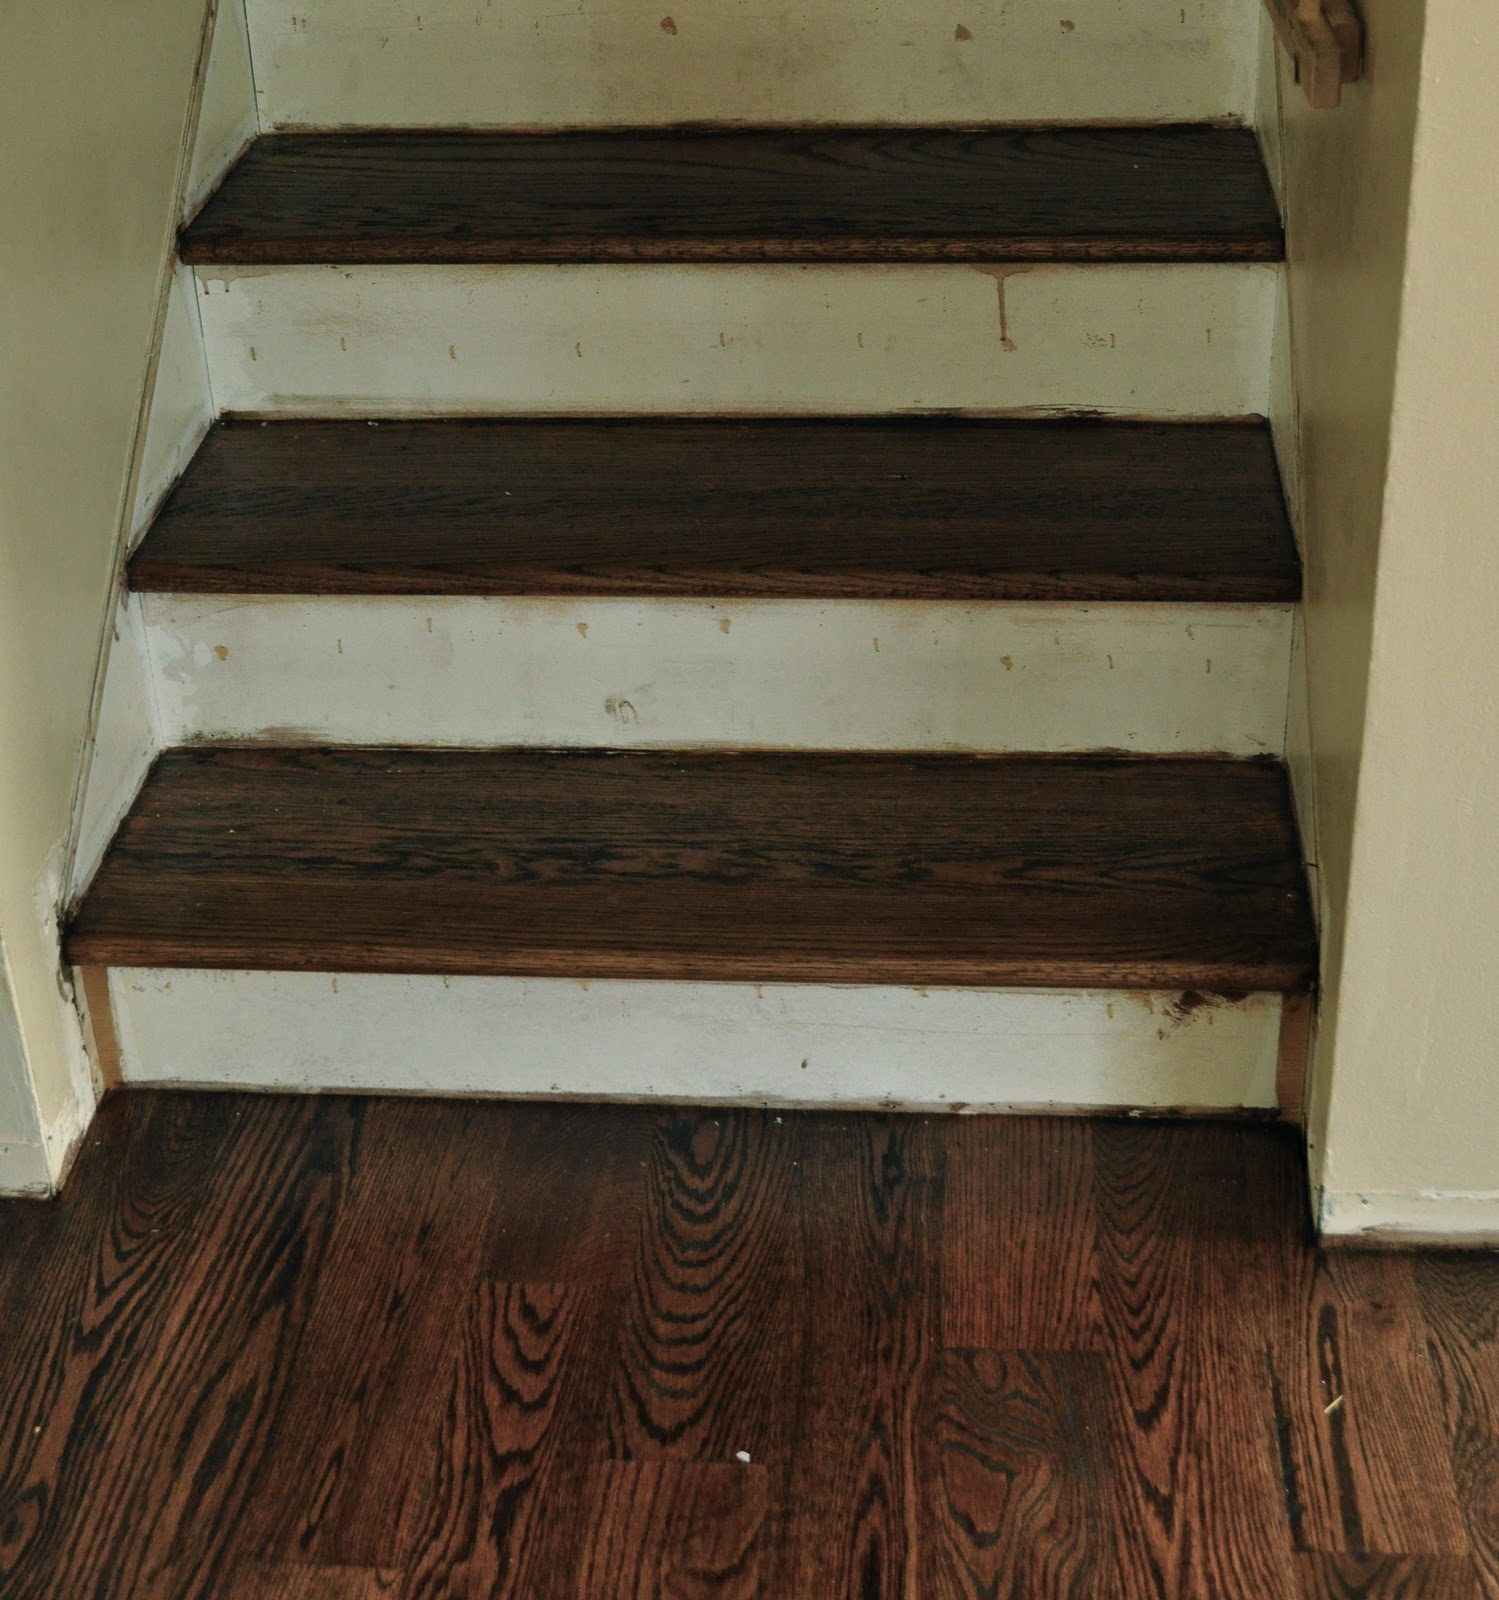 Wood Stairs Painted Risers: My Complete Kitchen Remodel Story For About $12,000